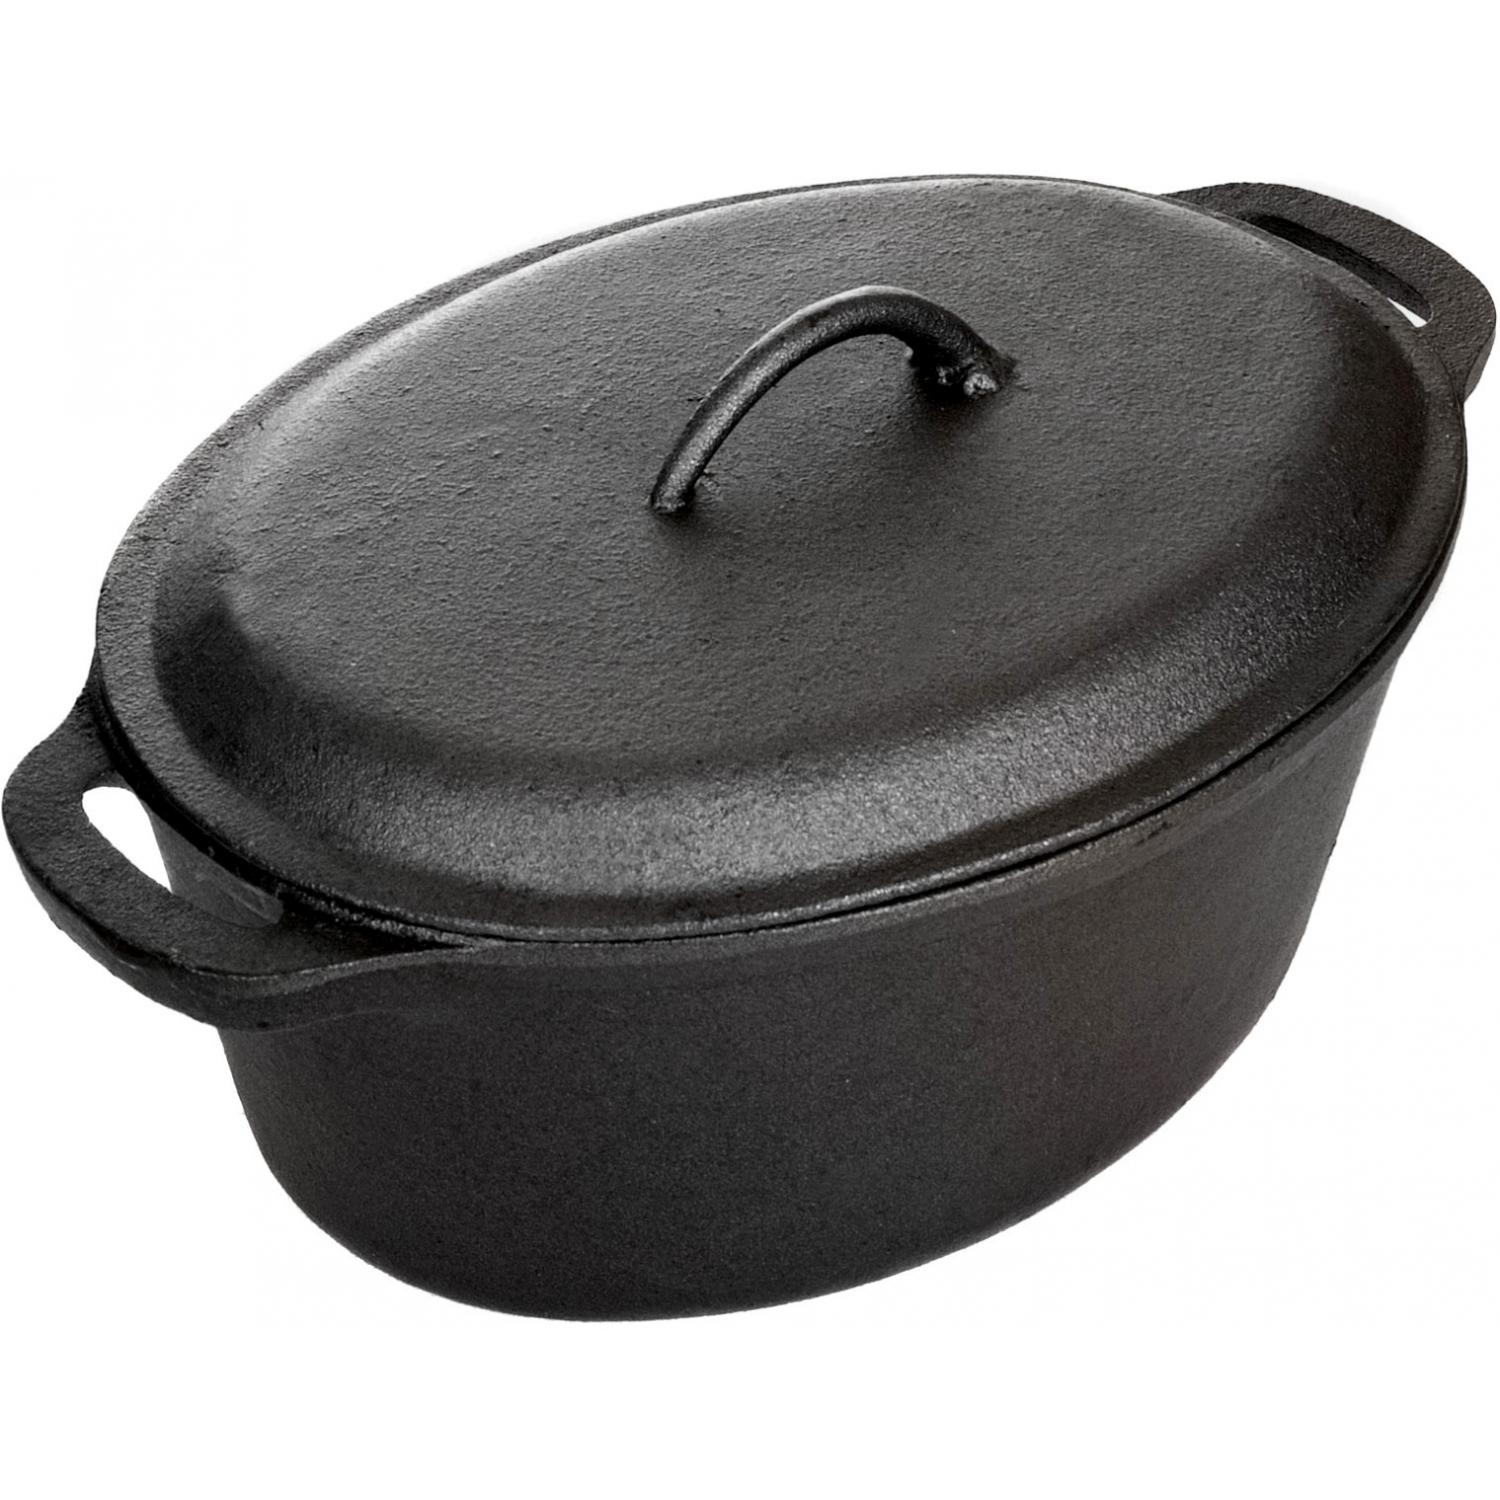 Get Cajun Cookware Dutch Ovens With Fry Basket 9 Quart